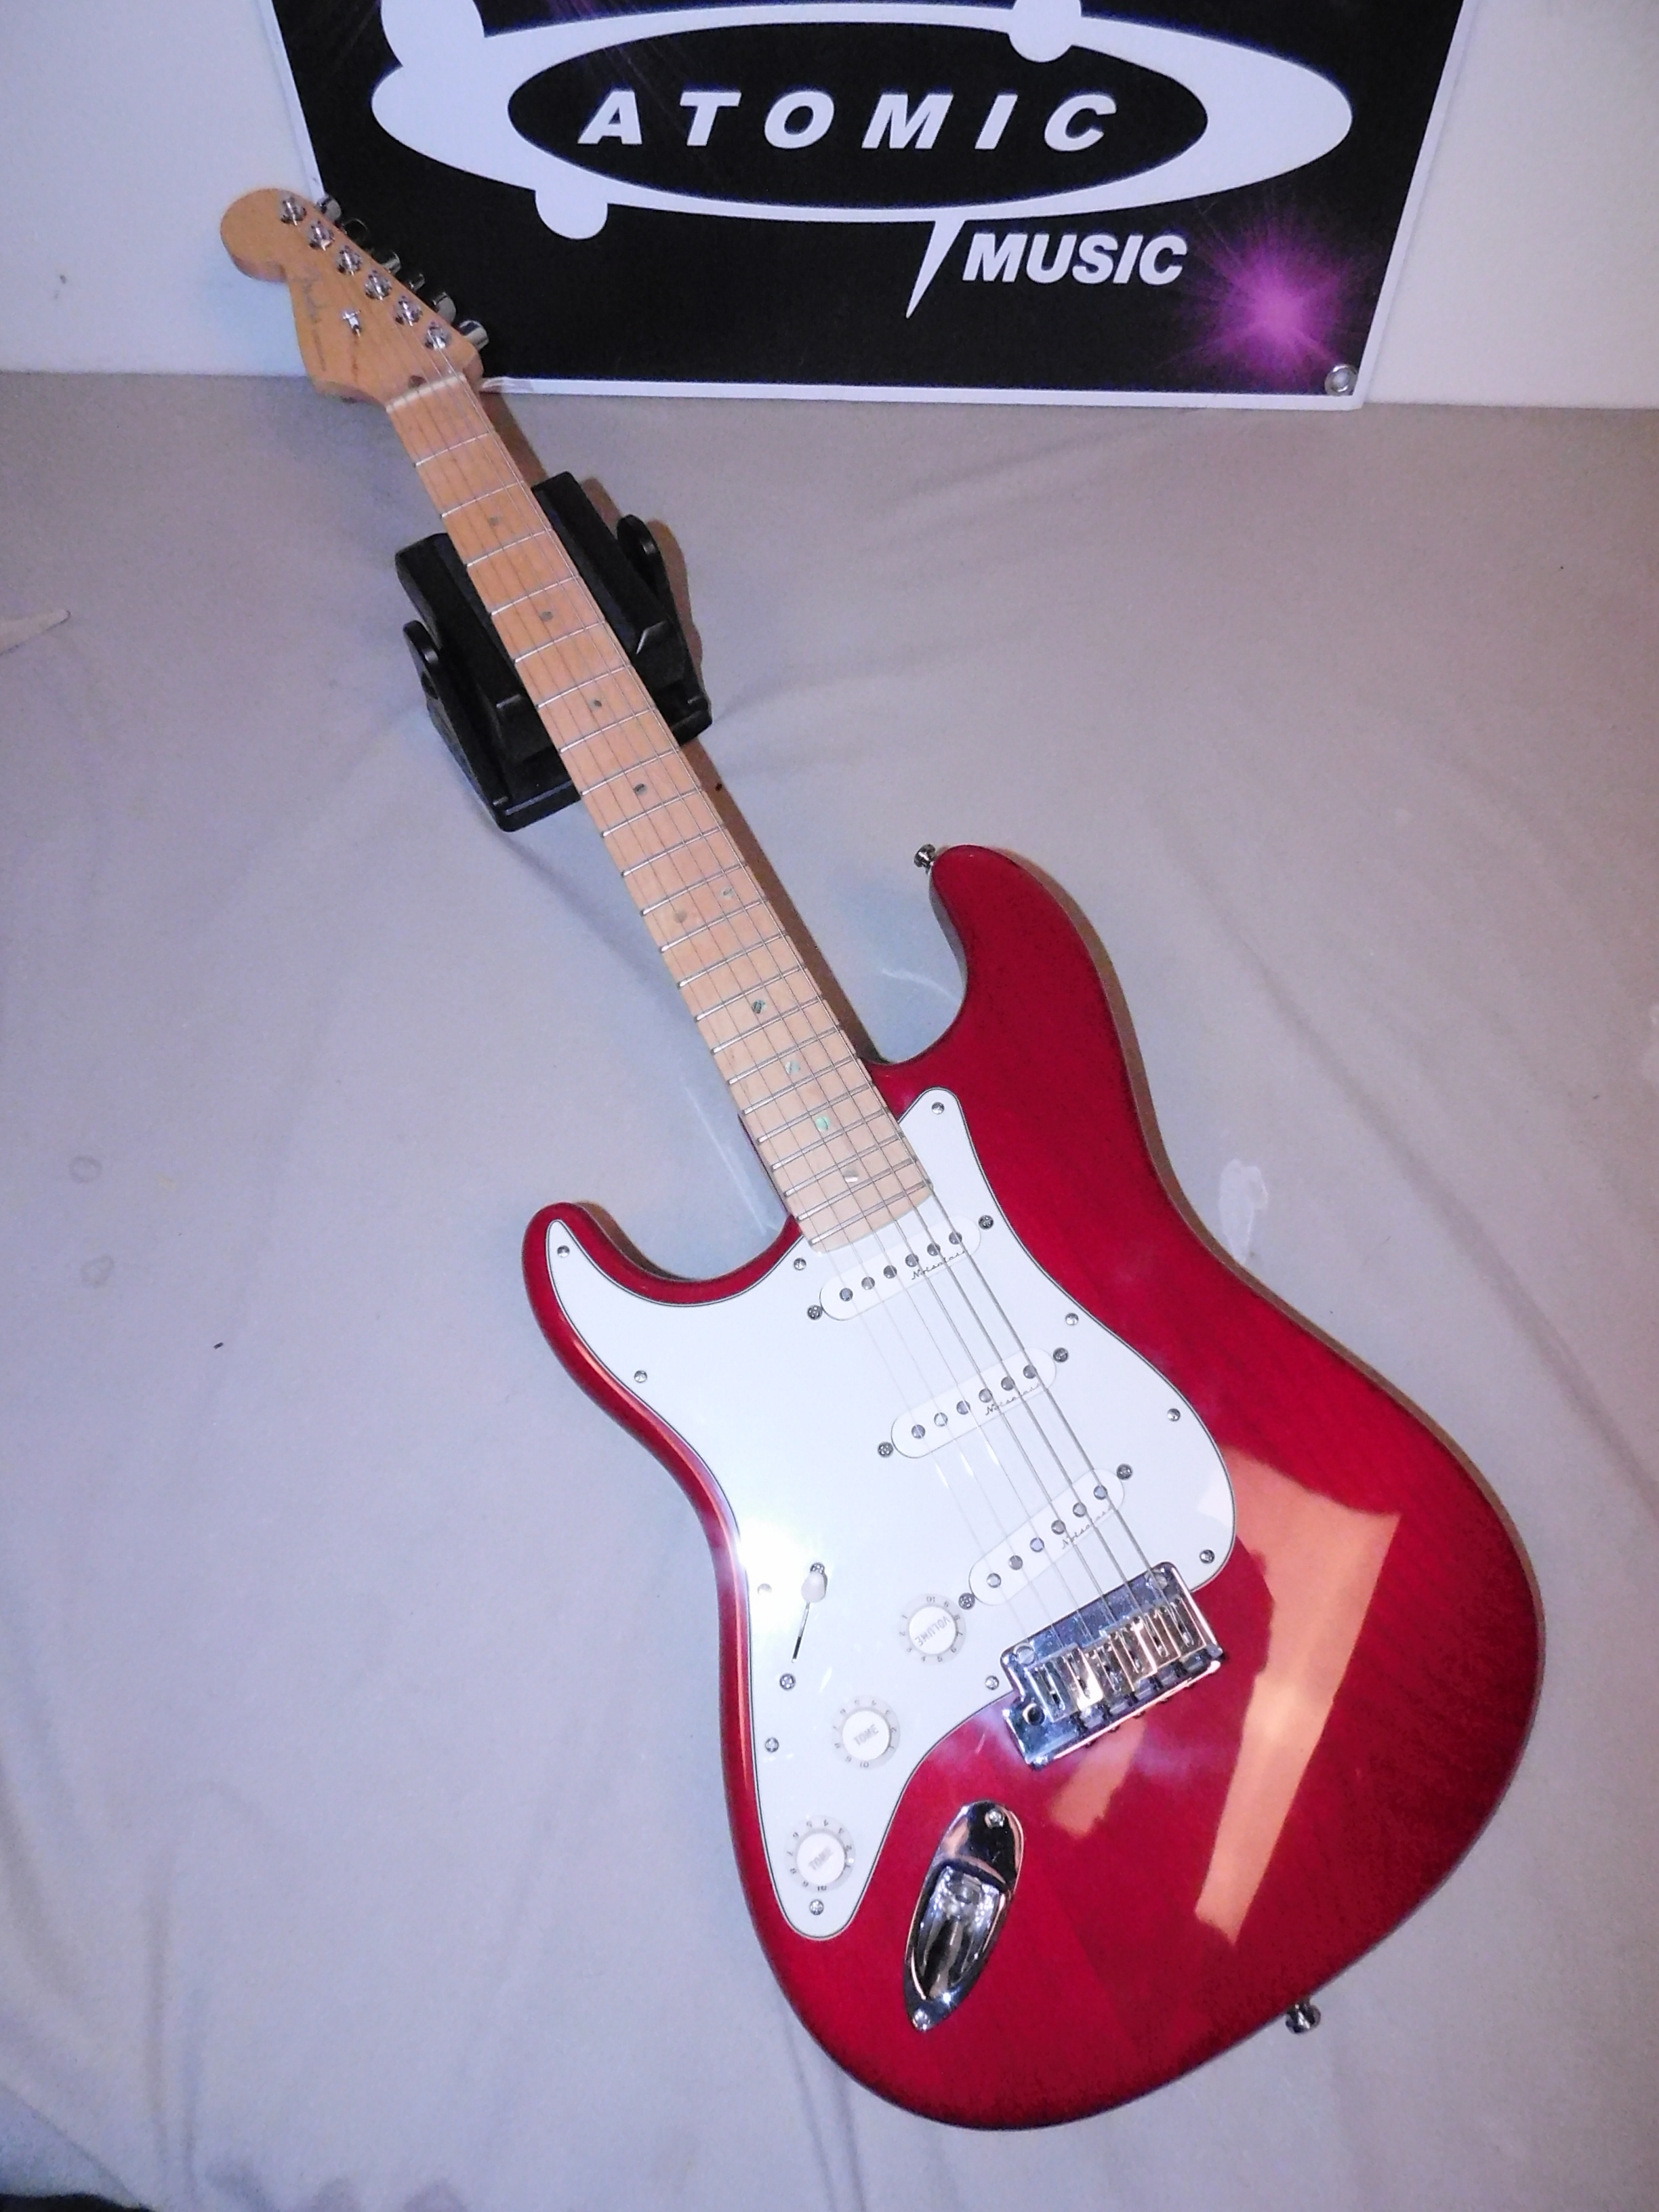 AMERICAN LEFT-HANDED FENDER DELUXE STRATOCASTER - RED STRAT DLX - LEFTY